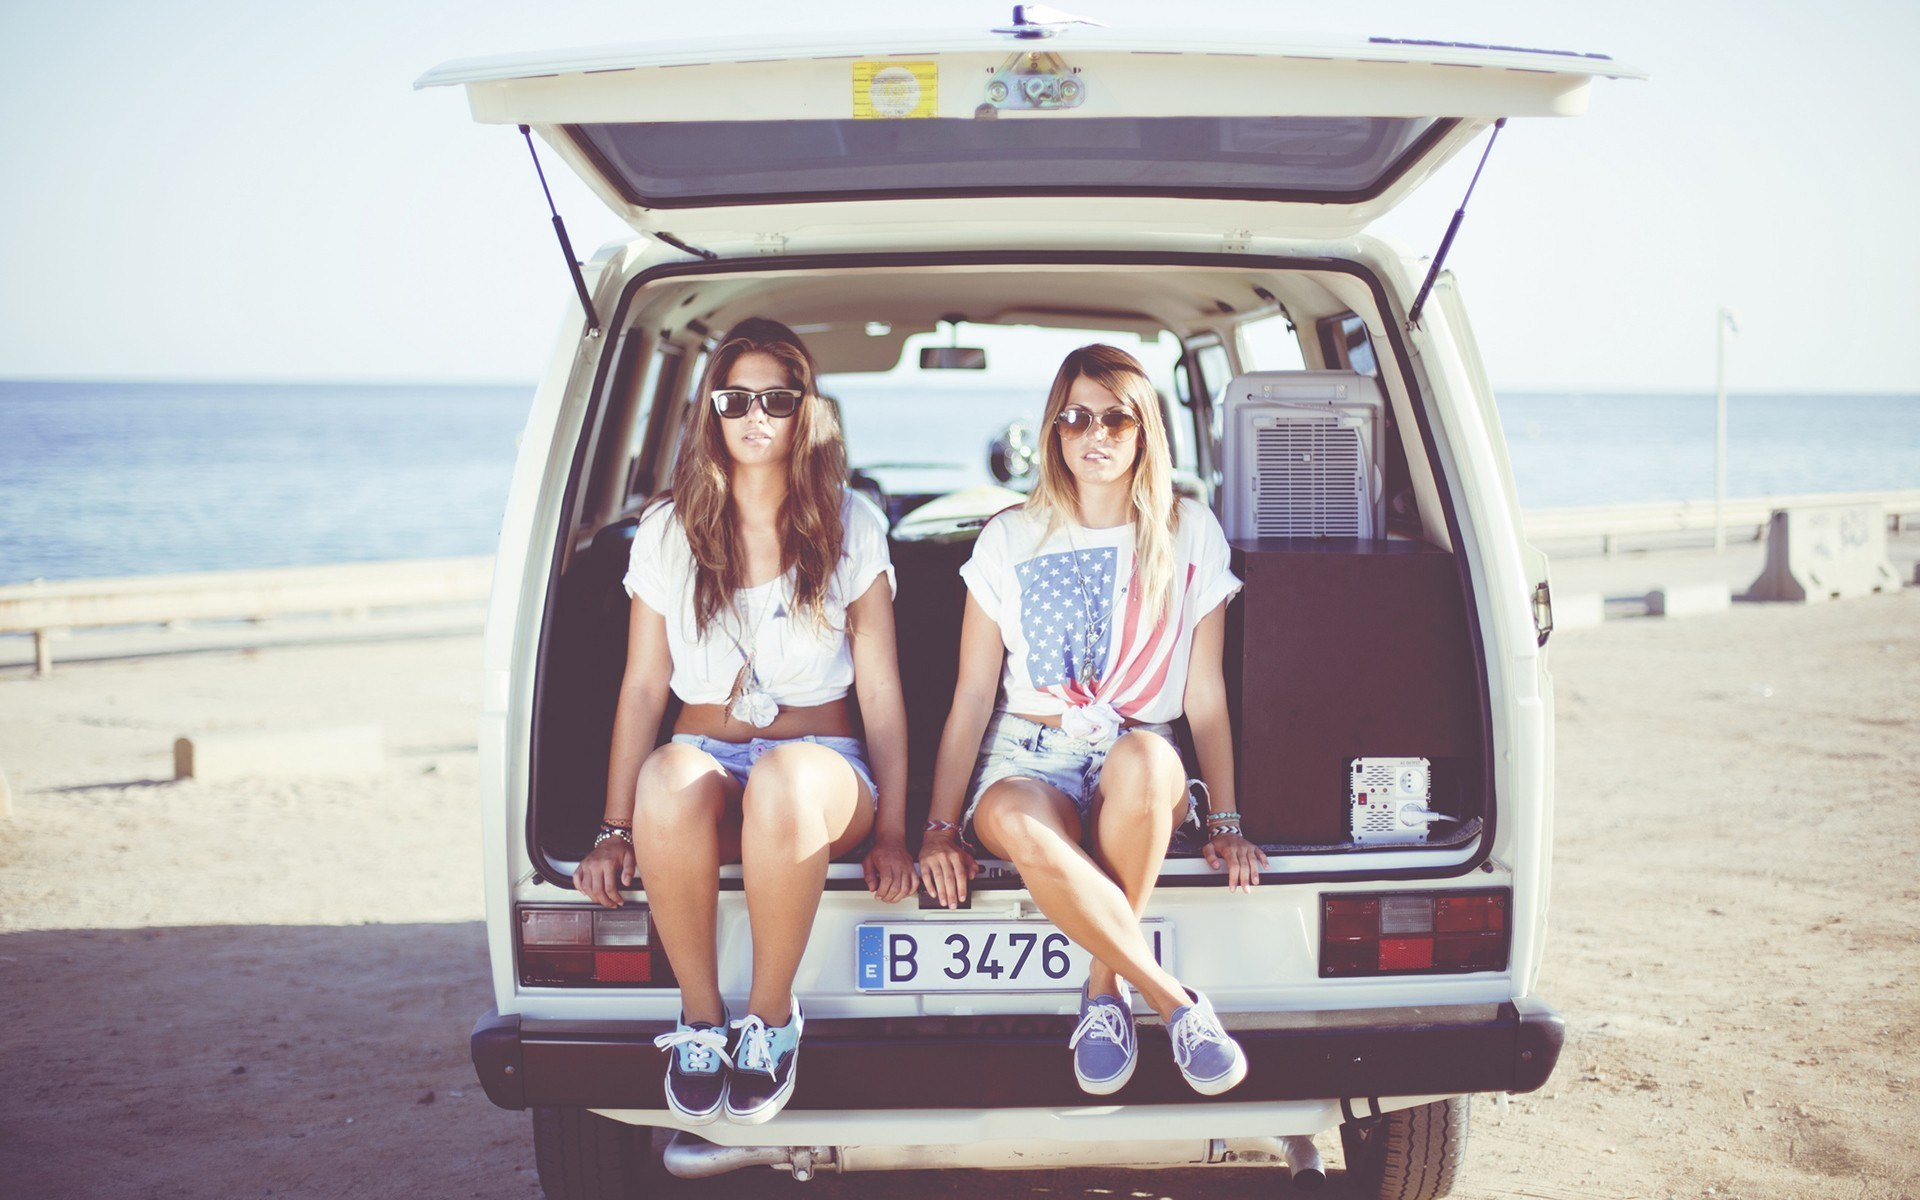 models-girls-car-beach-mood-hd-wallpaper